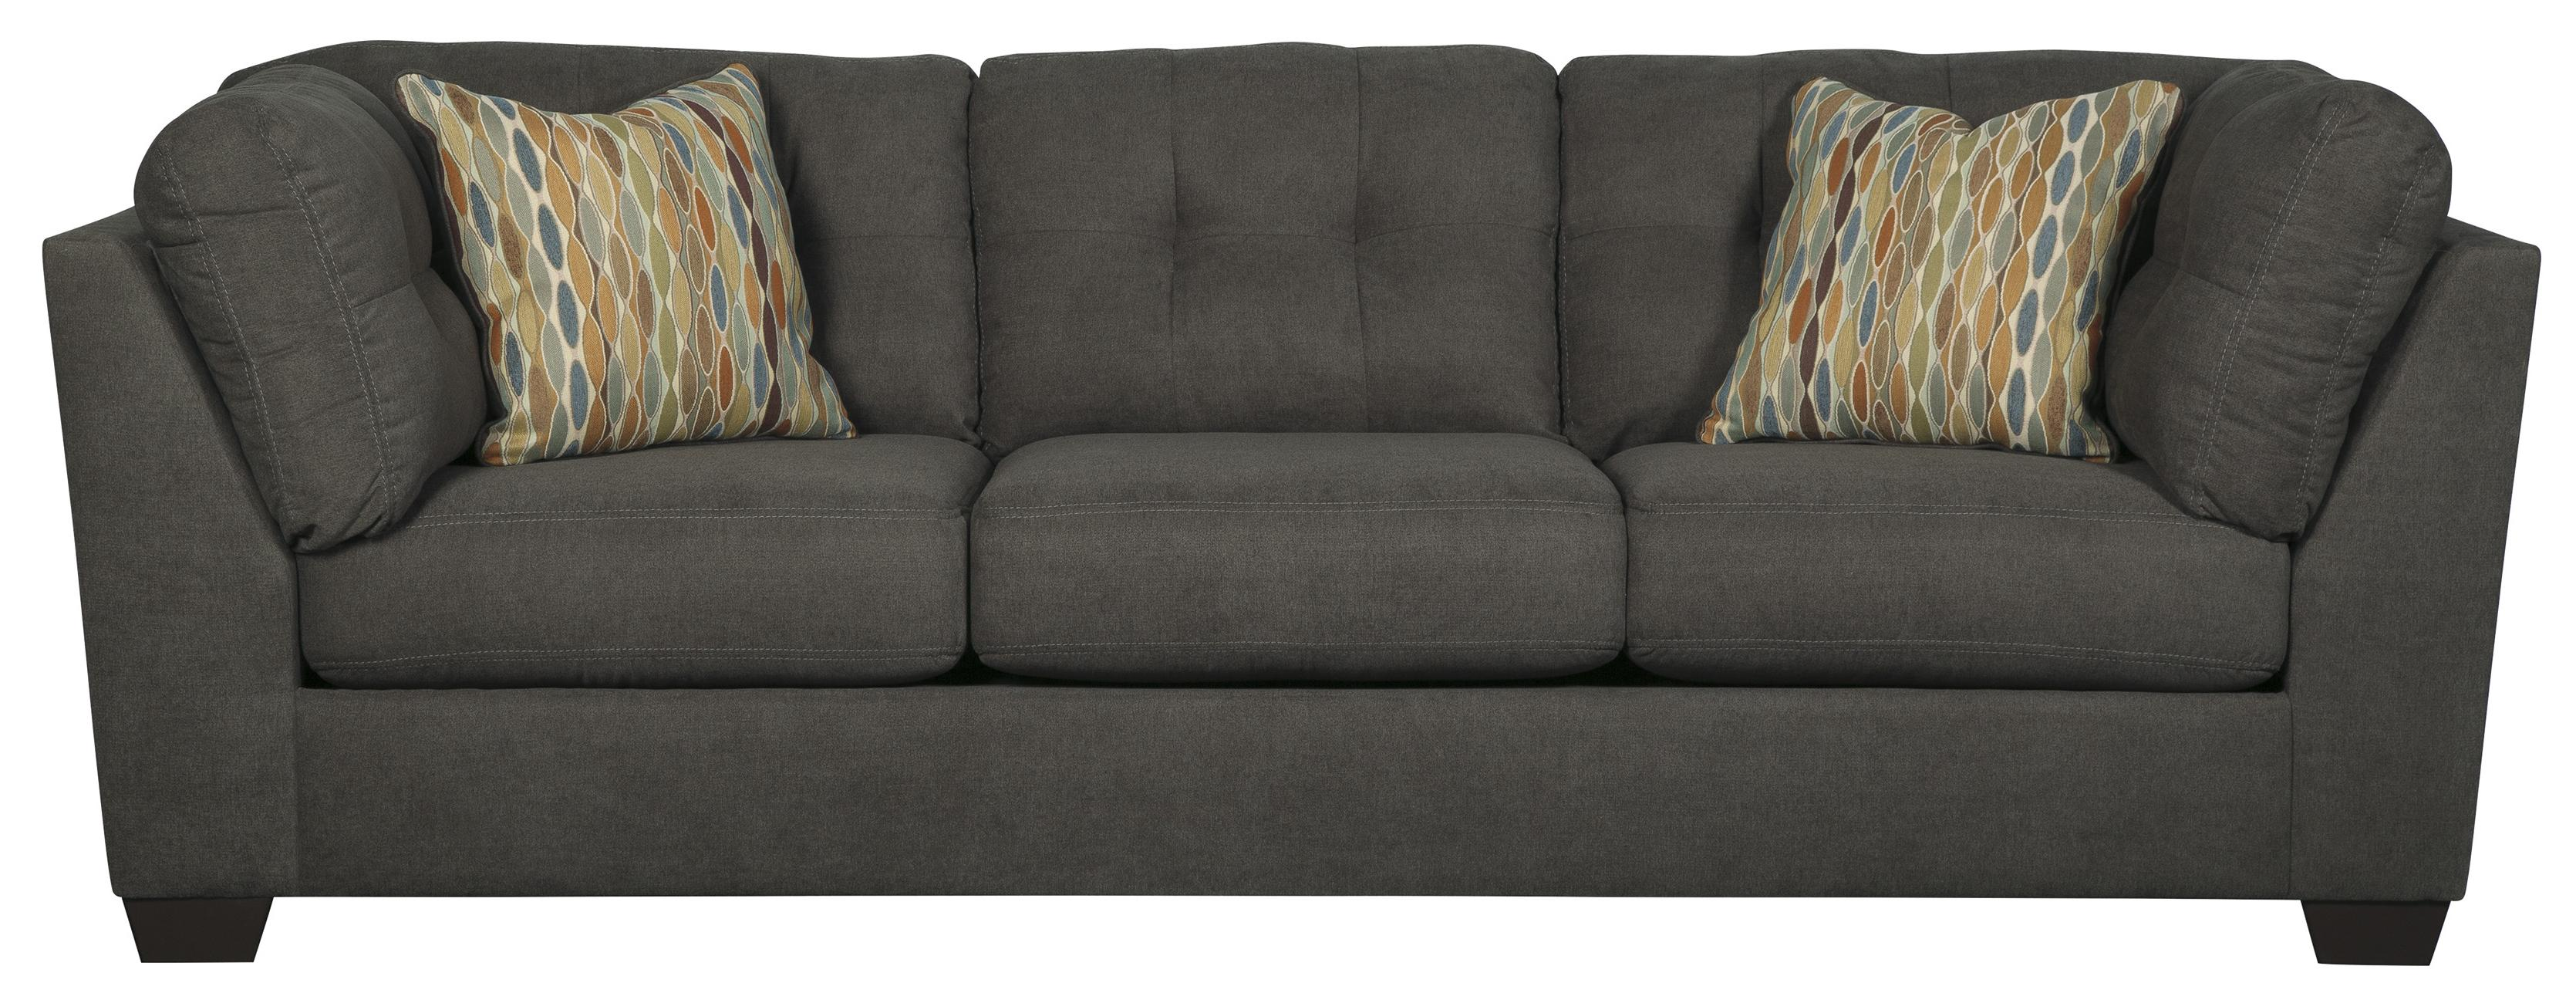 Benchcraft Delta City Steel Contemporary Sofa With Shelter Arms And Tufted Back Wayside